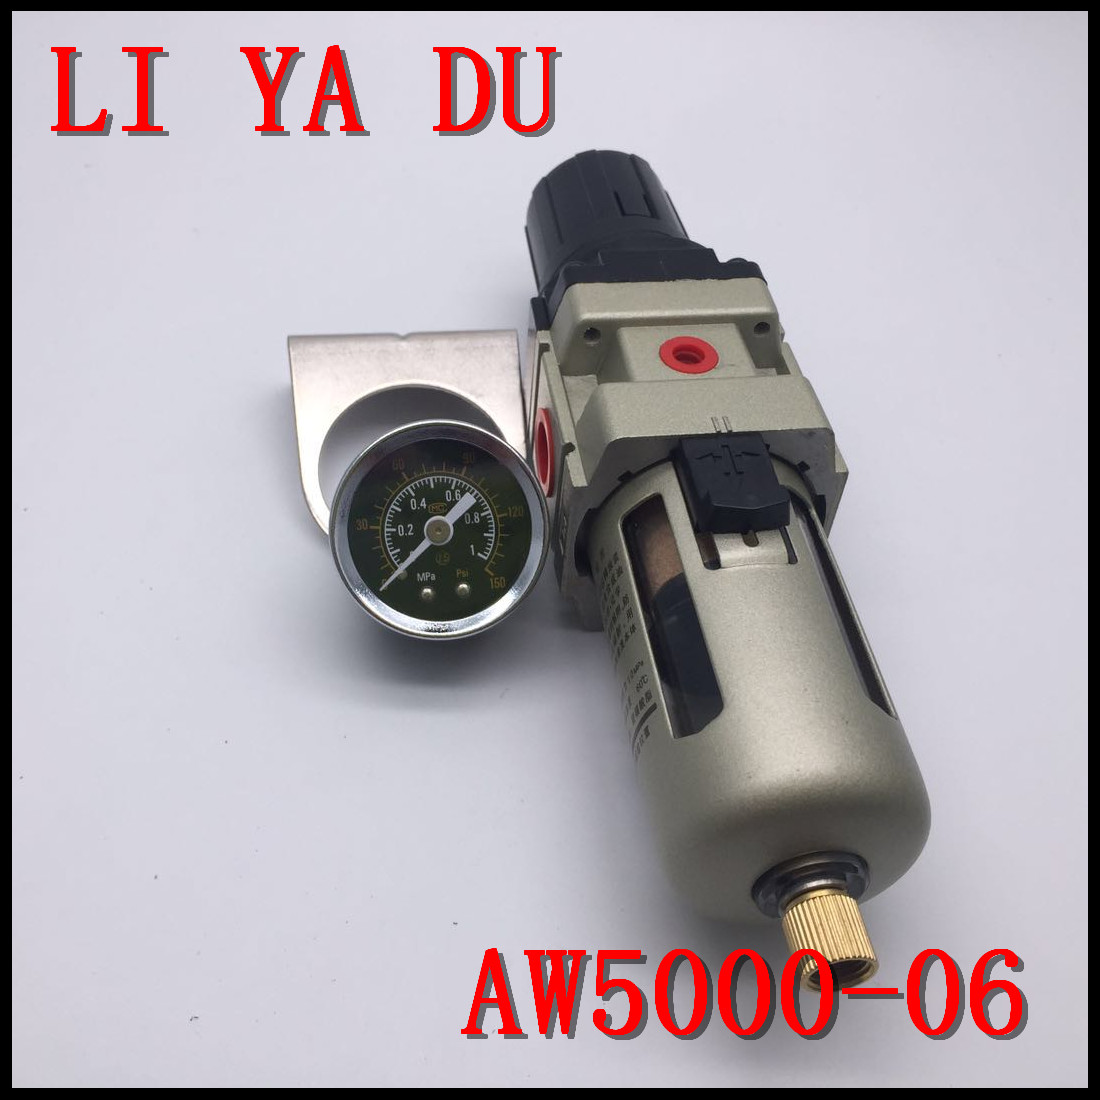 AW5000-06 G3/4 Pneumatic air compressor filter pressure reducing valve regulating valve free shipping g1 ports air filter regulator model aw5000 10 with pressure gauge 5pcs in lot high flow rate in stock